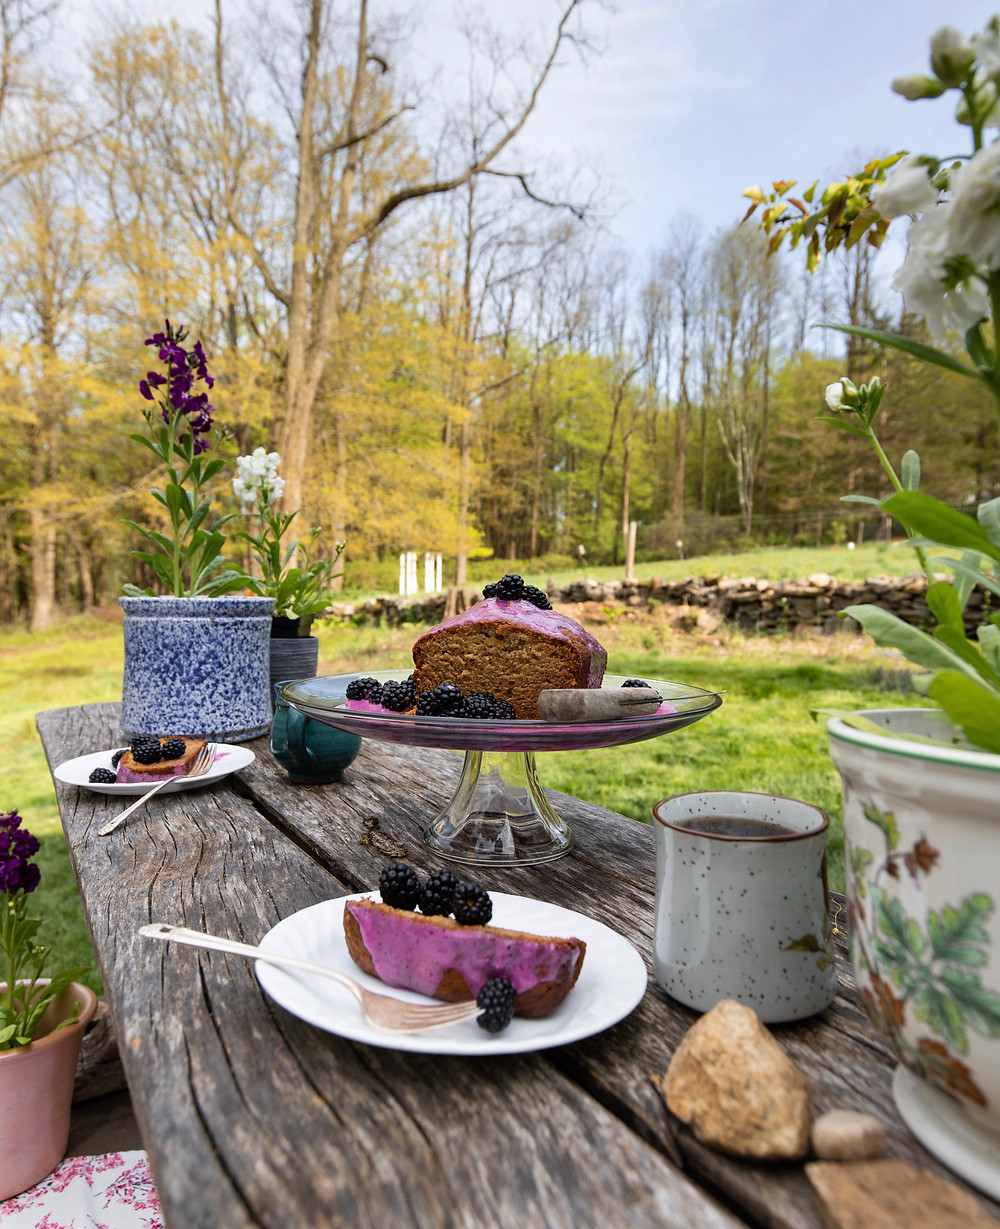 Summer picnic, teatime, garden snack,lemon blueberry drizzle recipe, loaf cake, banana bread, natural purple icing, blackberries, summer dessert